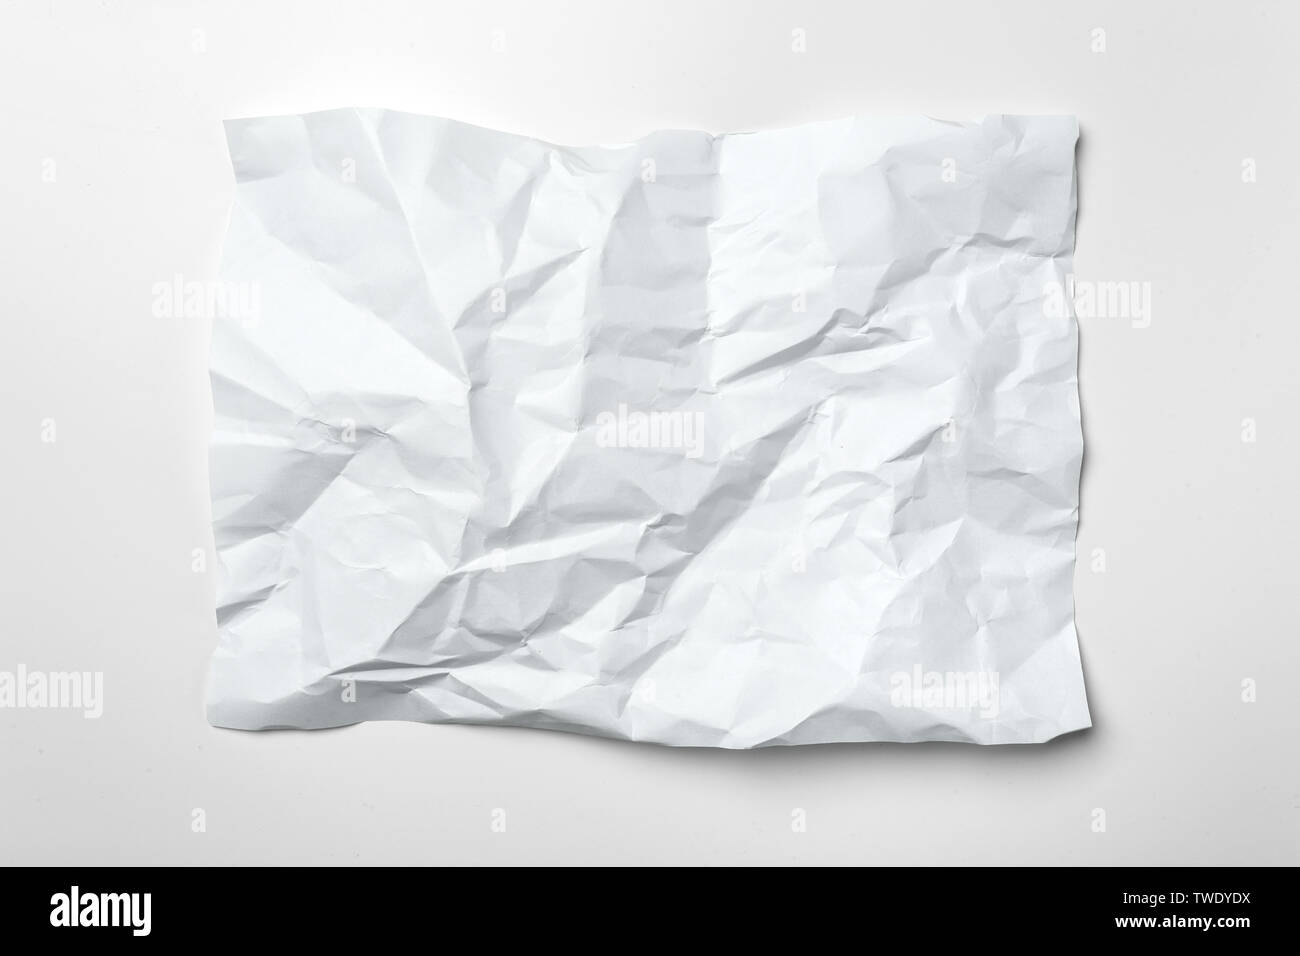 White crumpled paper - Stock Image